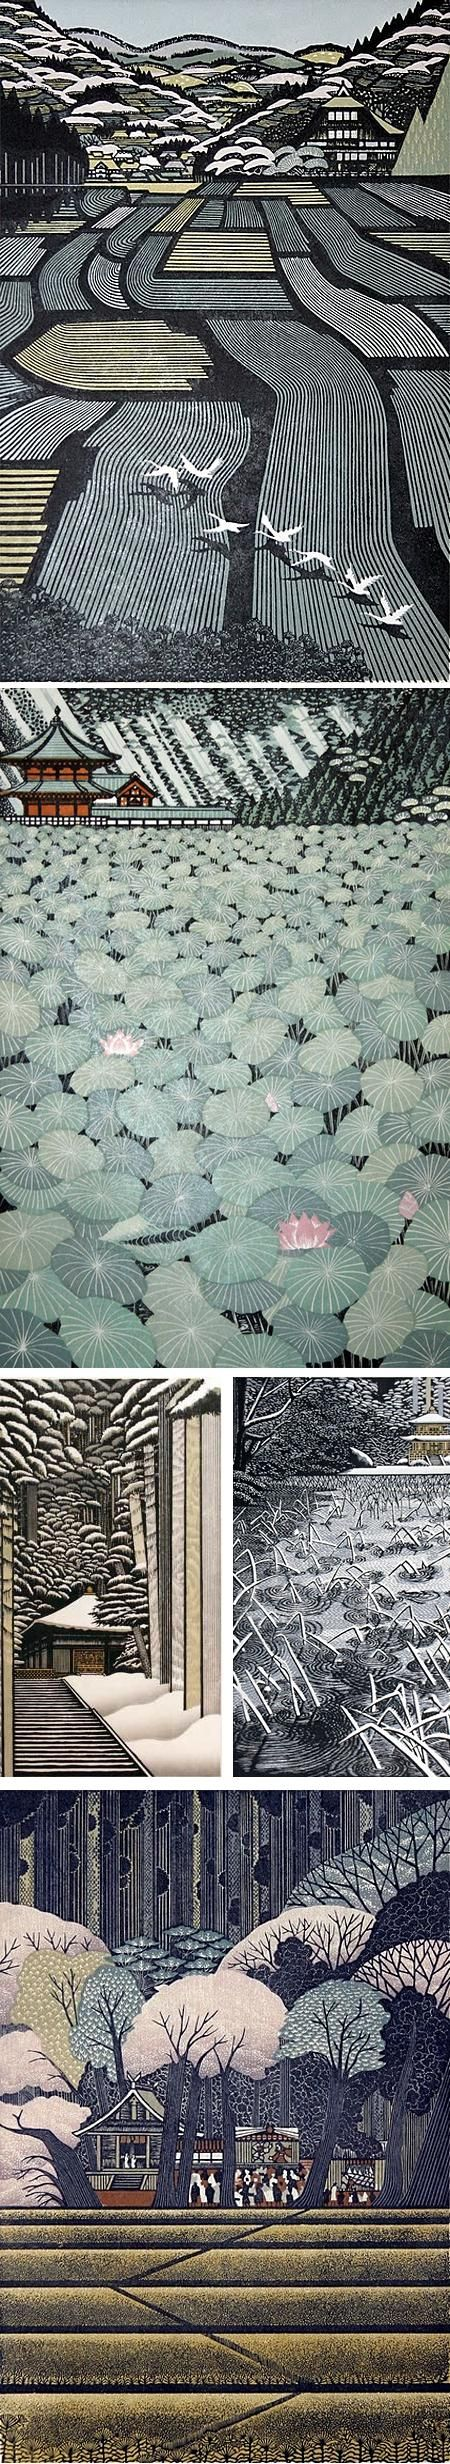 Ray Morimura (b.1948) ; He is a Japanese artist from Tokyo who works mostly with wood block prints すばらしいいいいいい